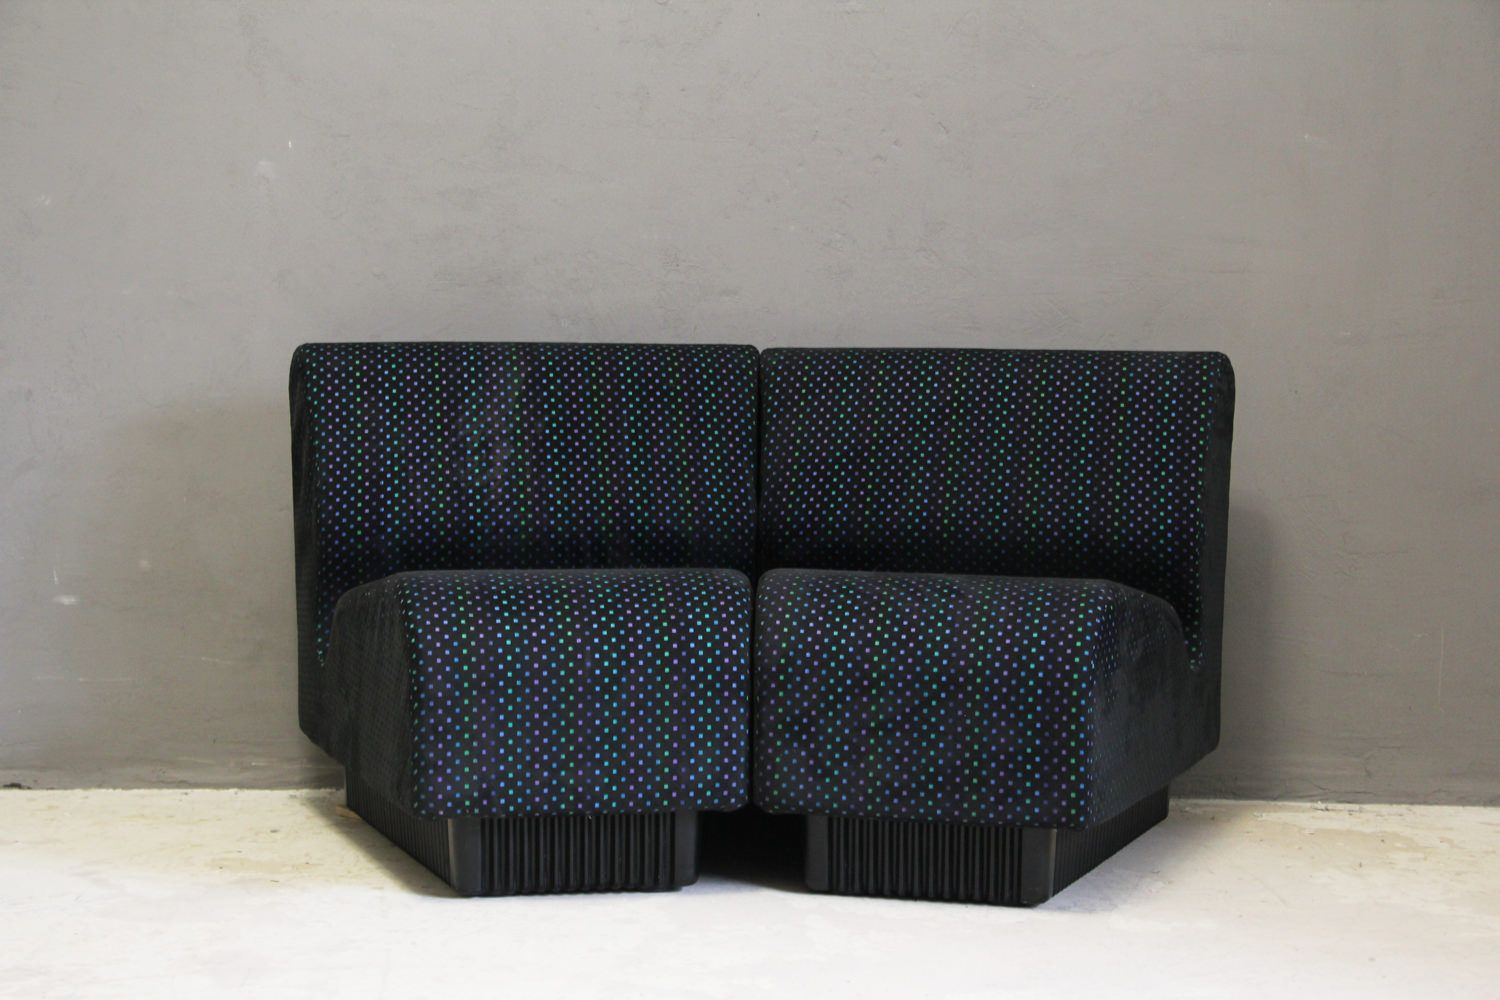 Exceptional Modular Sofa By Don Chadwick For Herman Miller, 1987